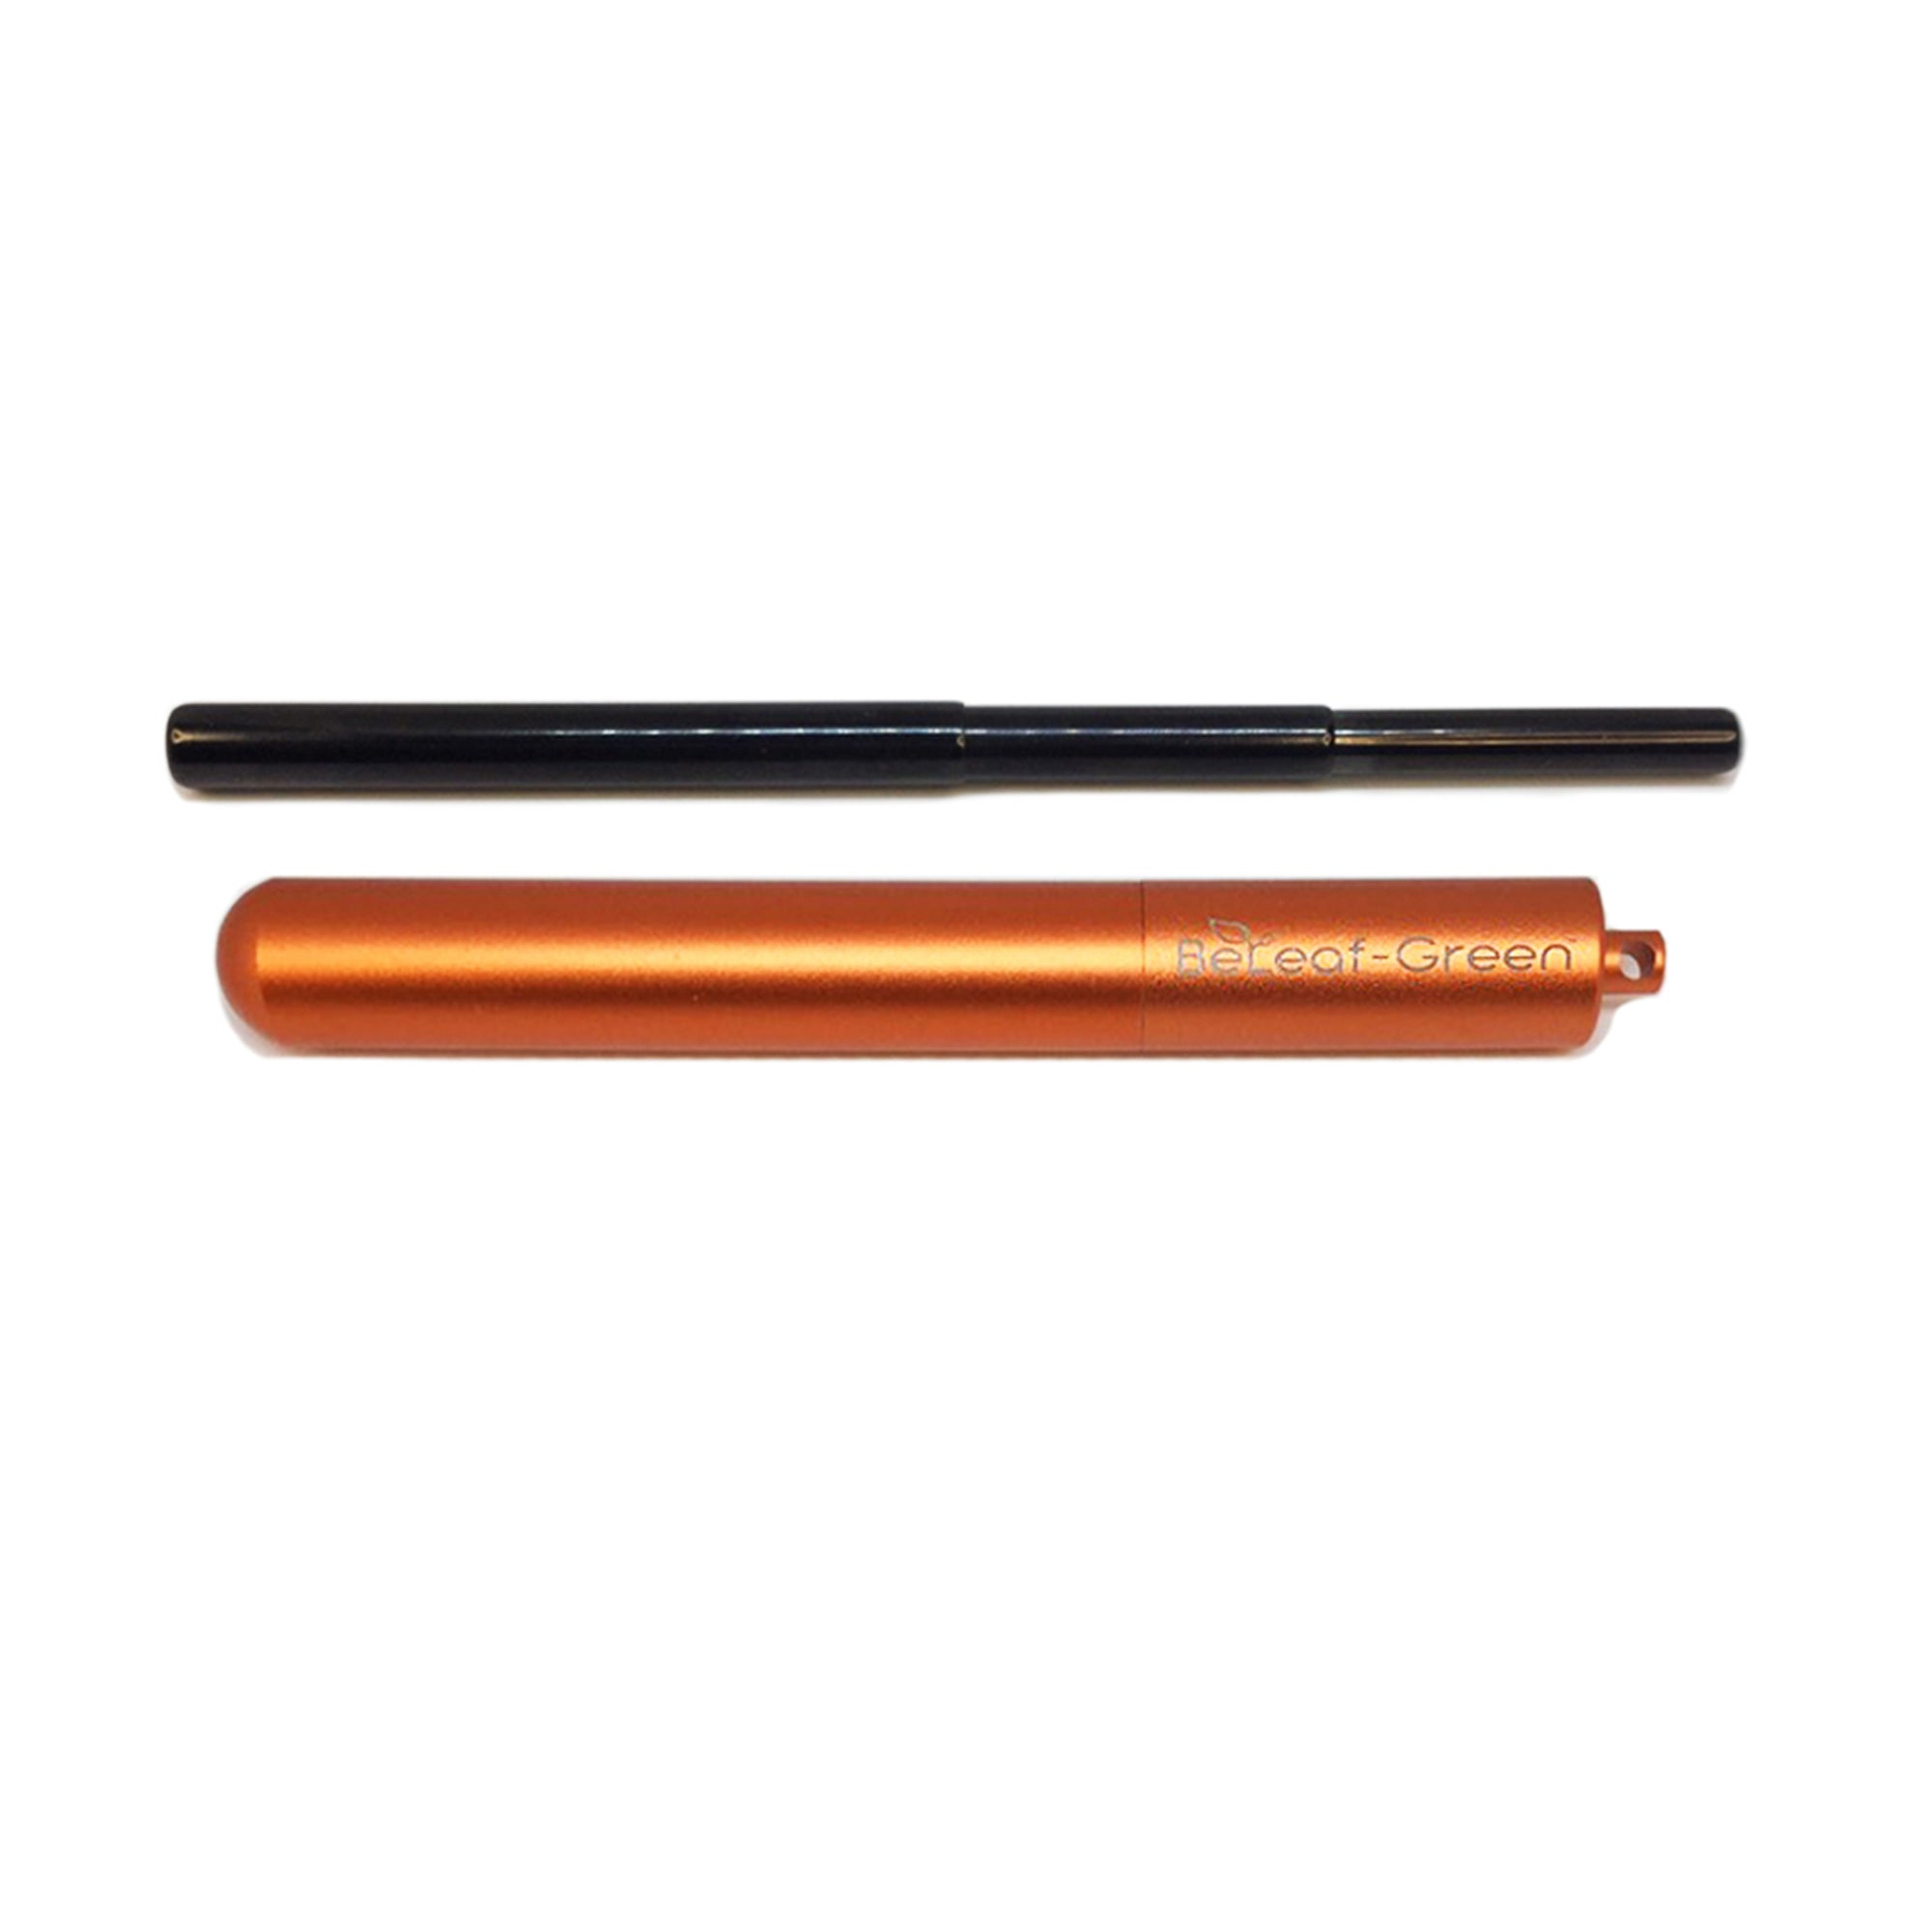 Best Reusable Telescopic Metal Straw Set with case, Orange, Customized, Personalized with you Name BeLeaf-Green